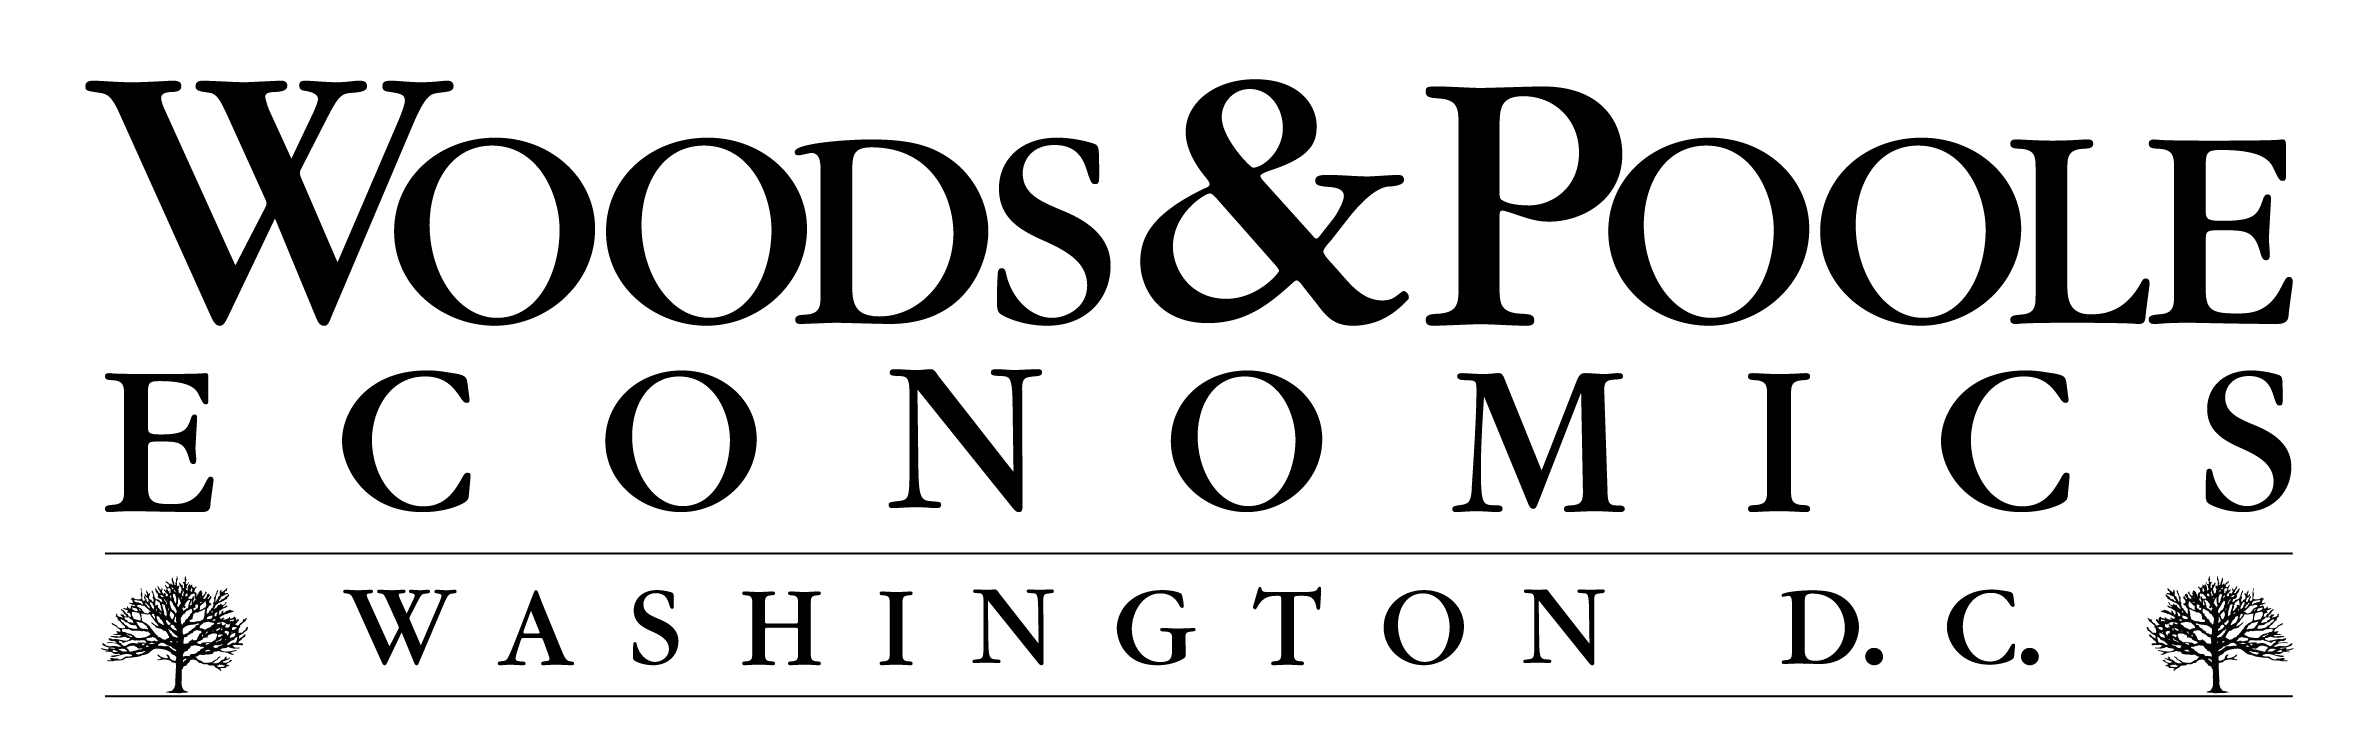 DC/MD/VA | Woods & Poole Economics, Inc